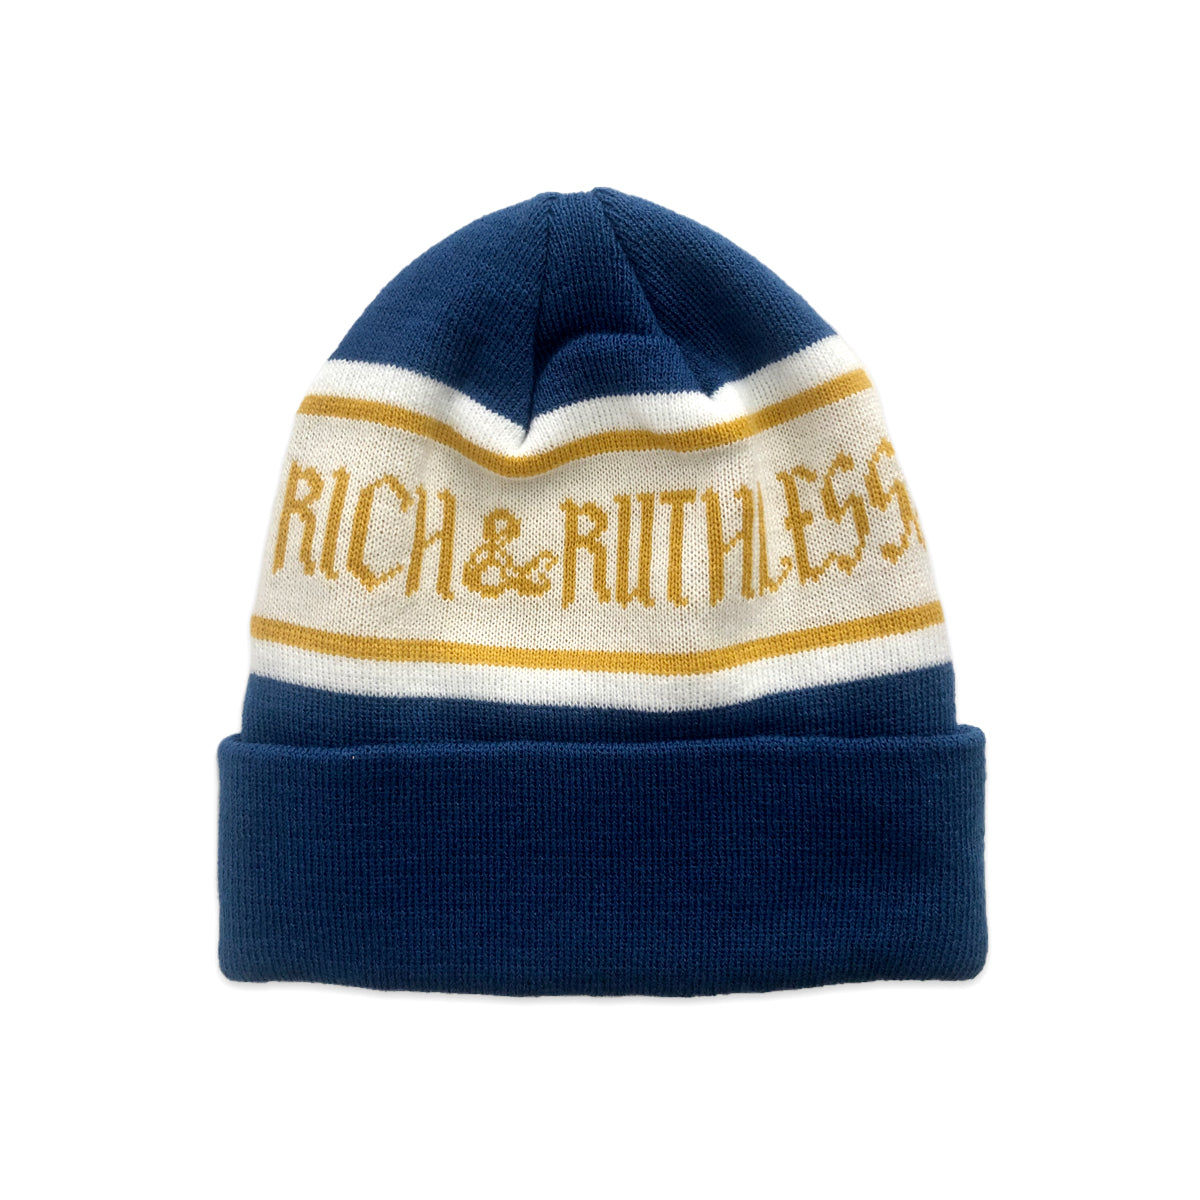 Rich & Ruthless Beanie (Blue/Gold)